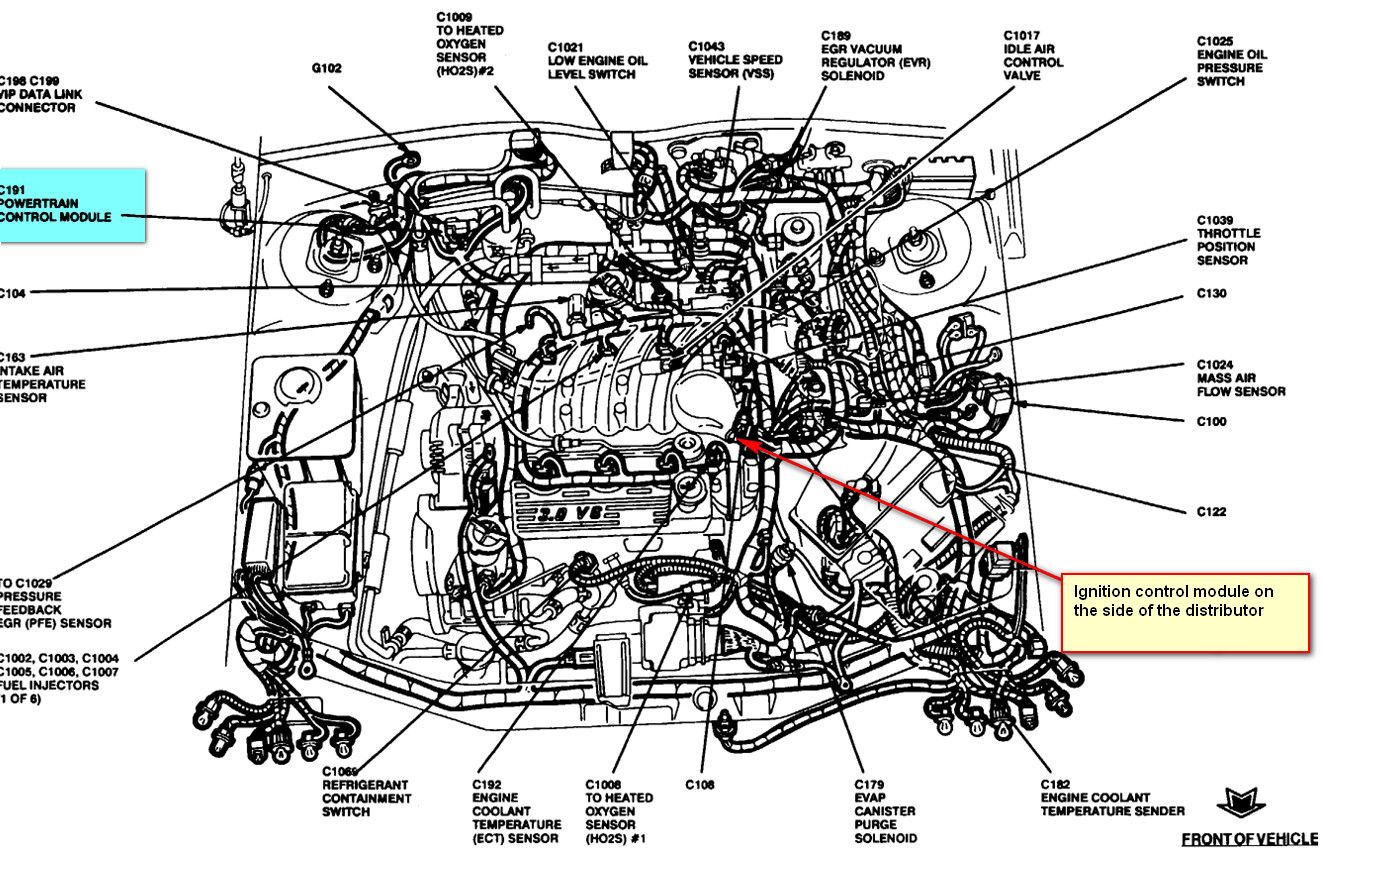 ford powertrain control module diagram wiring diagram host ford powertrain control module diagram [ 1380 x 891 Pixel ]